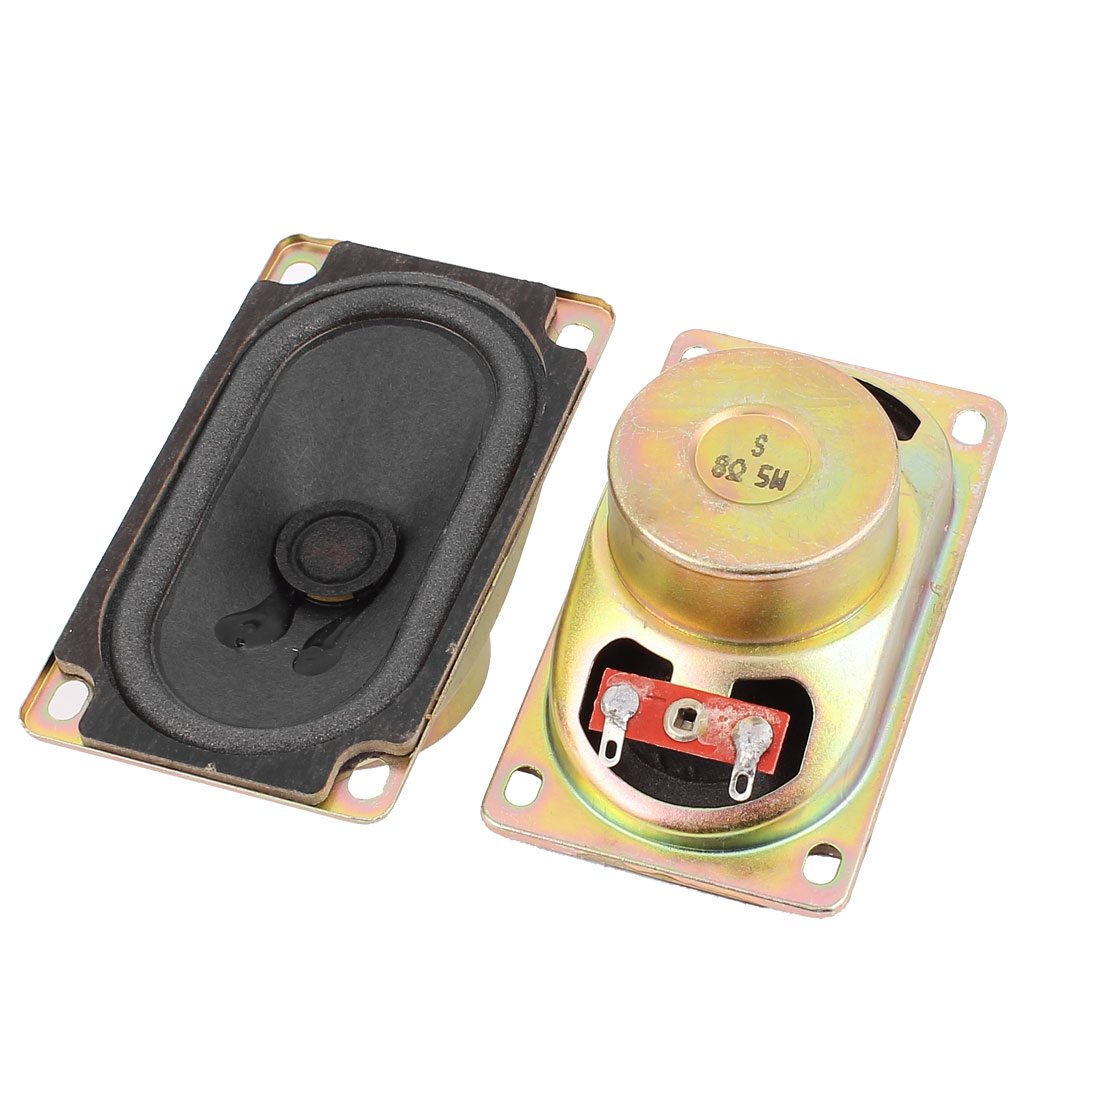 5W 8 Ohm Internal Magnet Speaker Loudspeaker 5cm x 9cm x 3.5cm 2Pcs